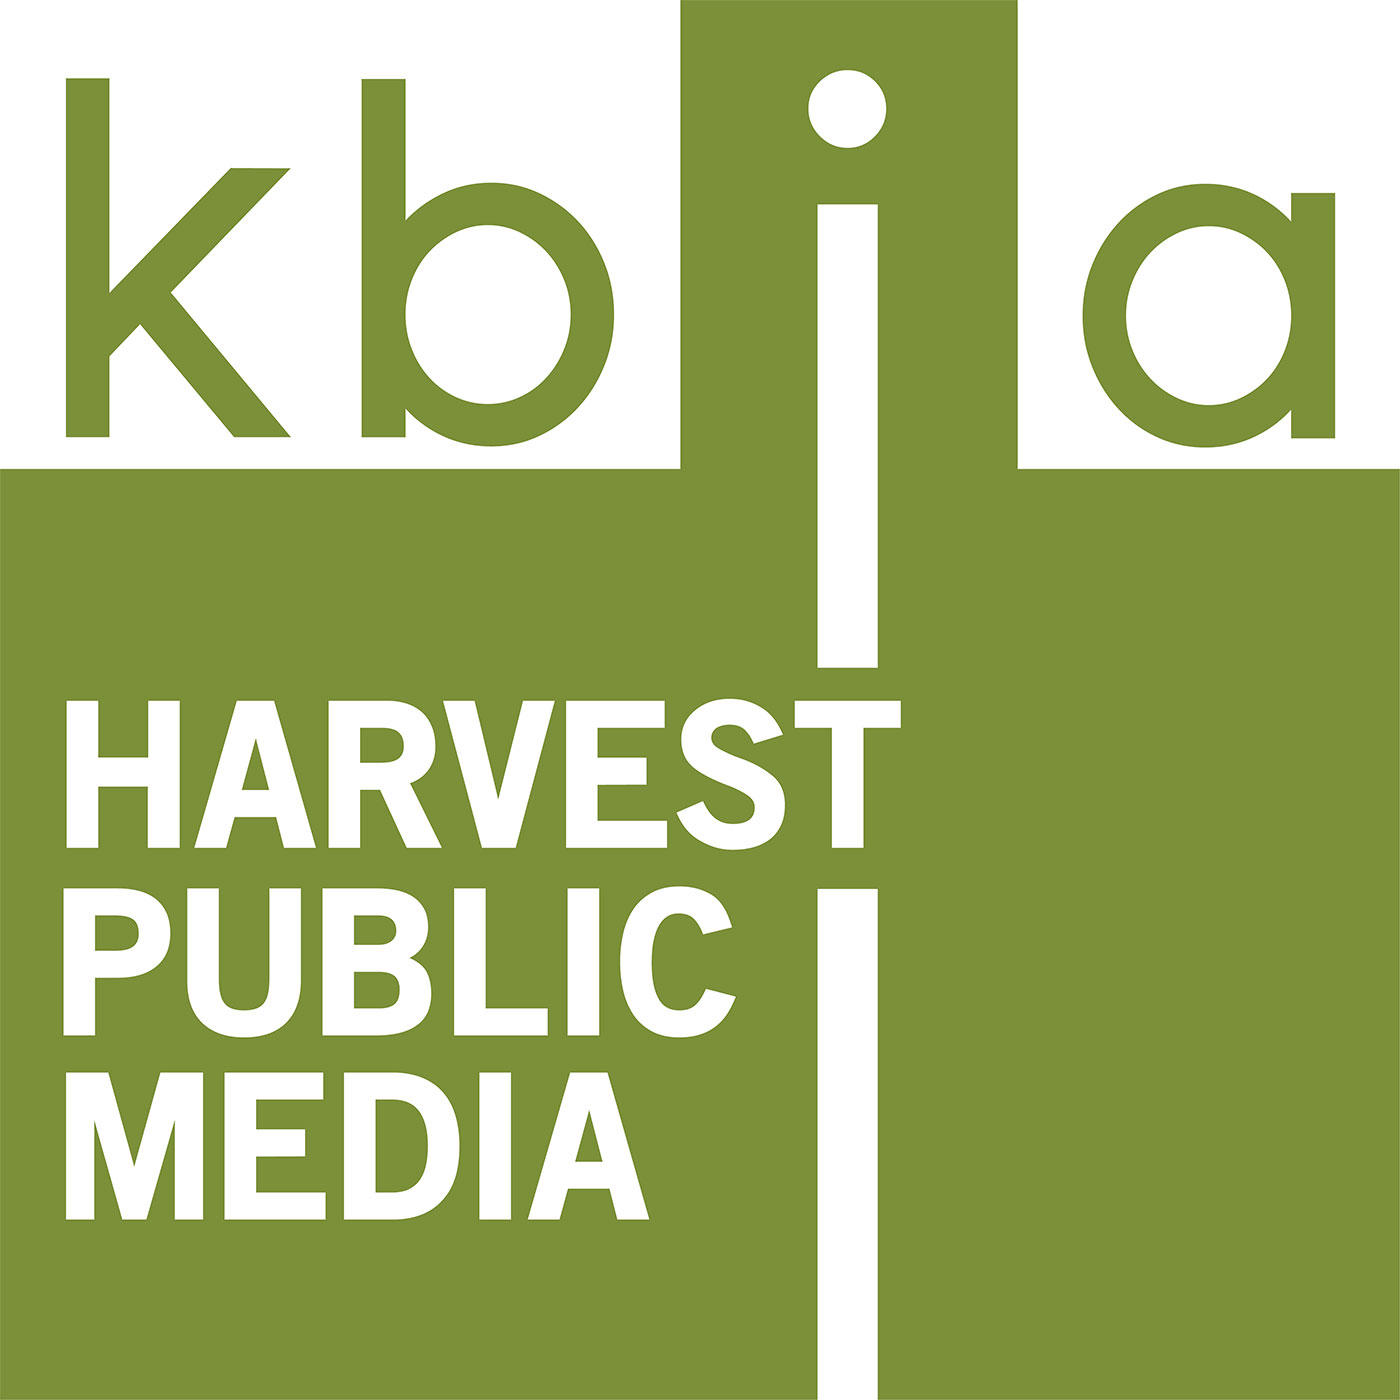 Harvest desk kbia kbias harvest desk covers food and agriculture issues in missouri and beyond the desk is a collaboration between kbia and harvest public media sciox Images